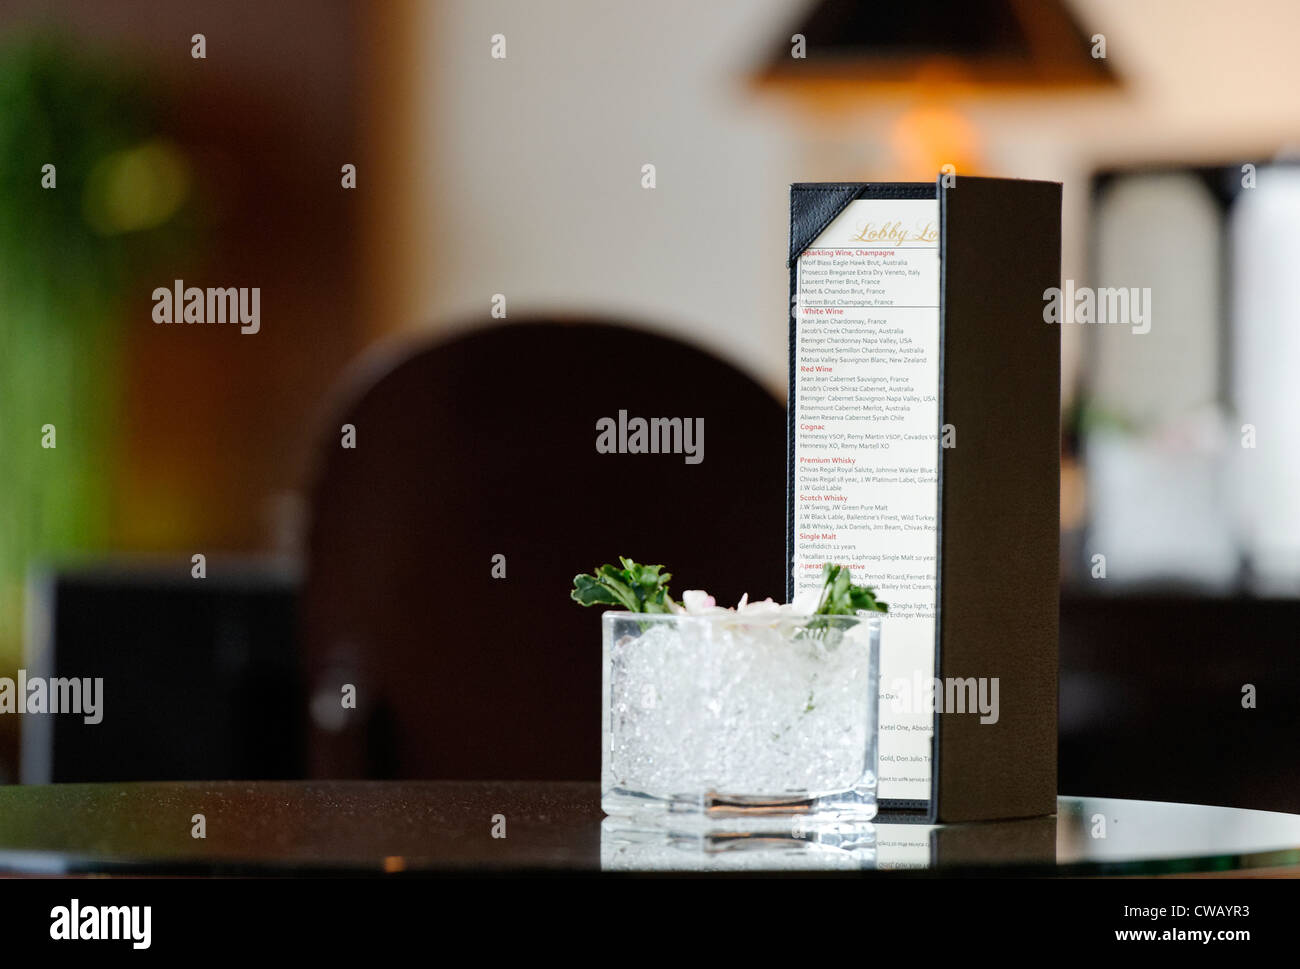 Cocktail Drinks Menu In The Marriott Hotel, Bangkok, With Glass Table  Decoration